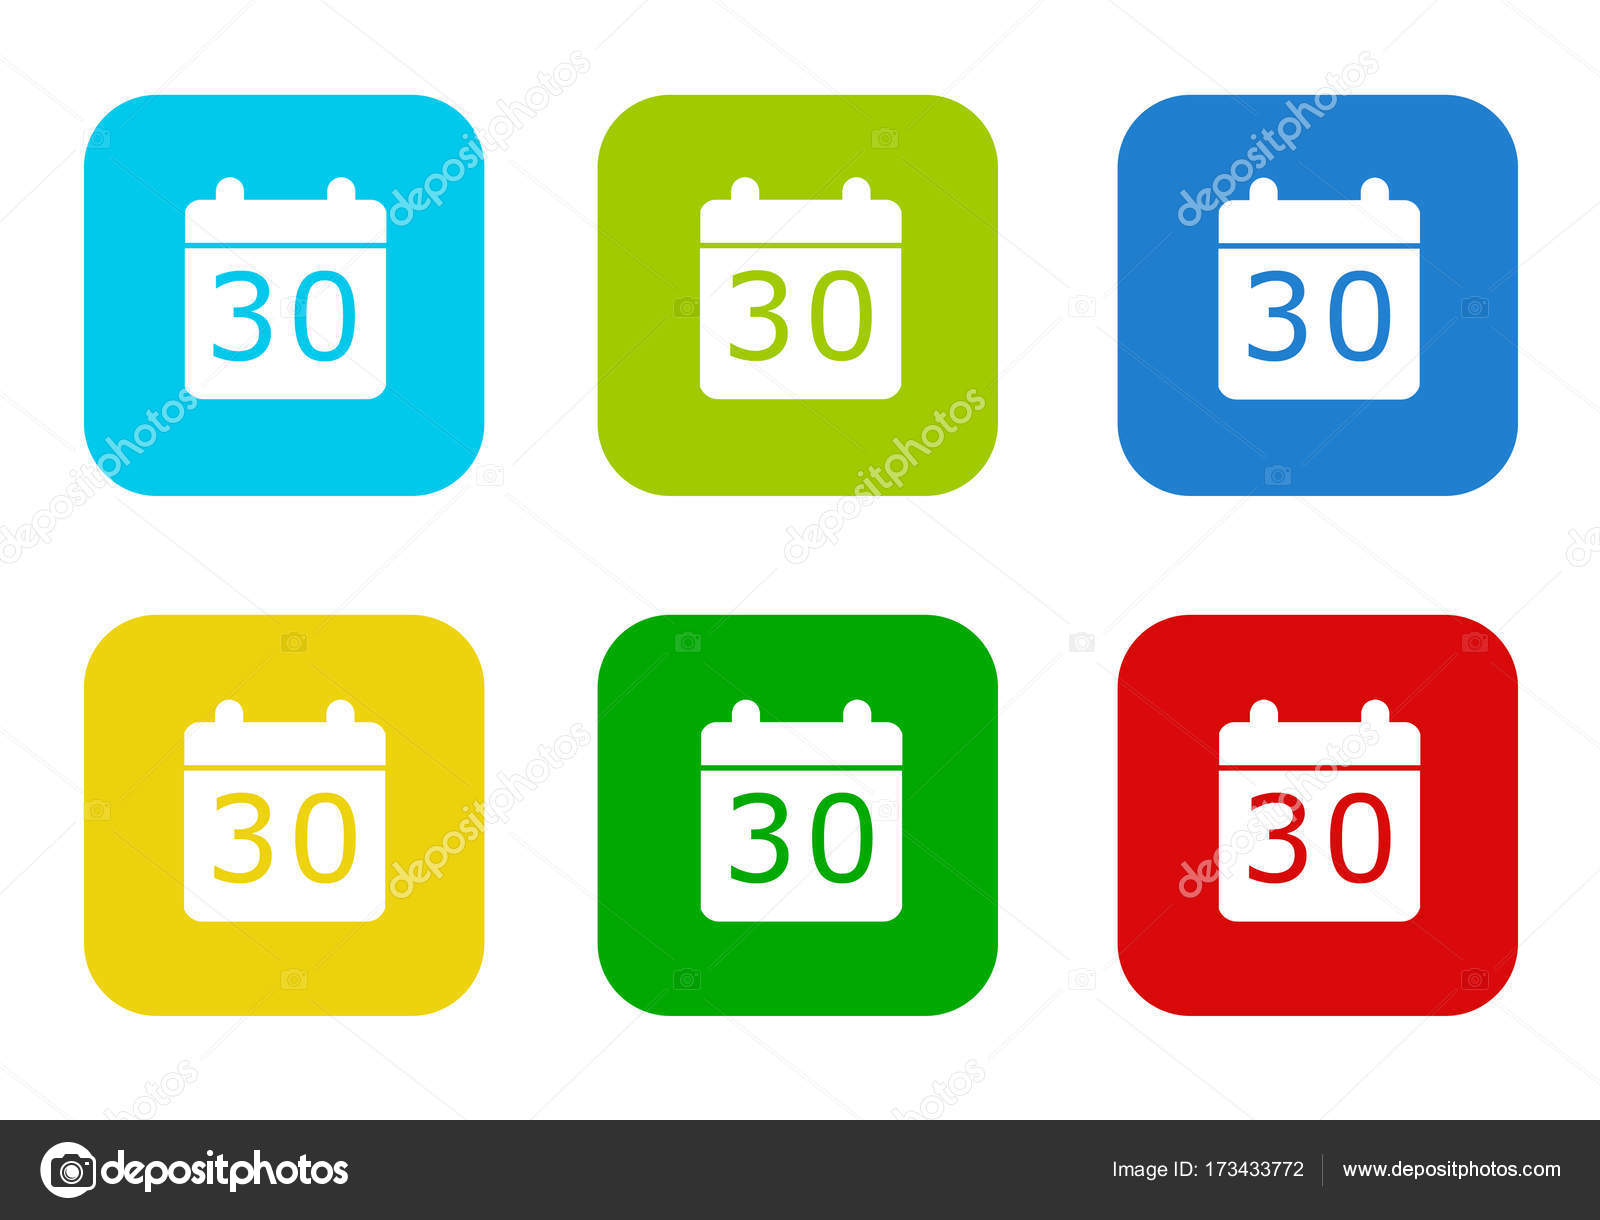 Set Rounded Square Colorful Flat Icons Calendar Symbol Blue Green